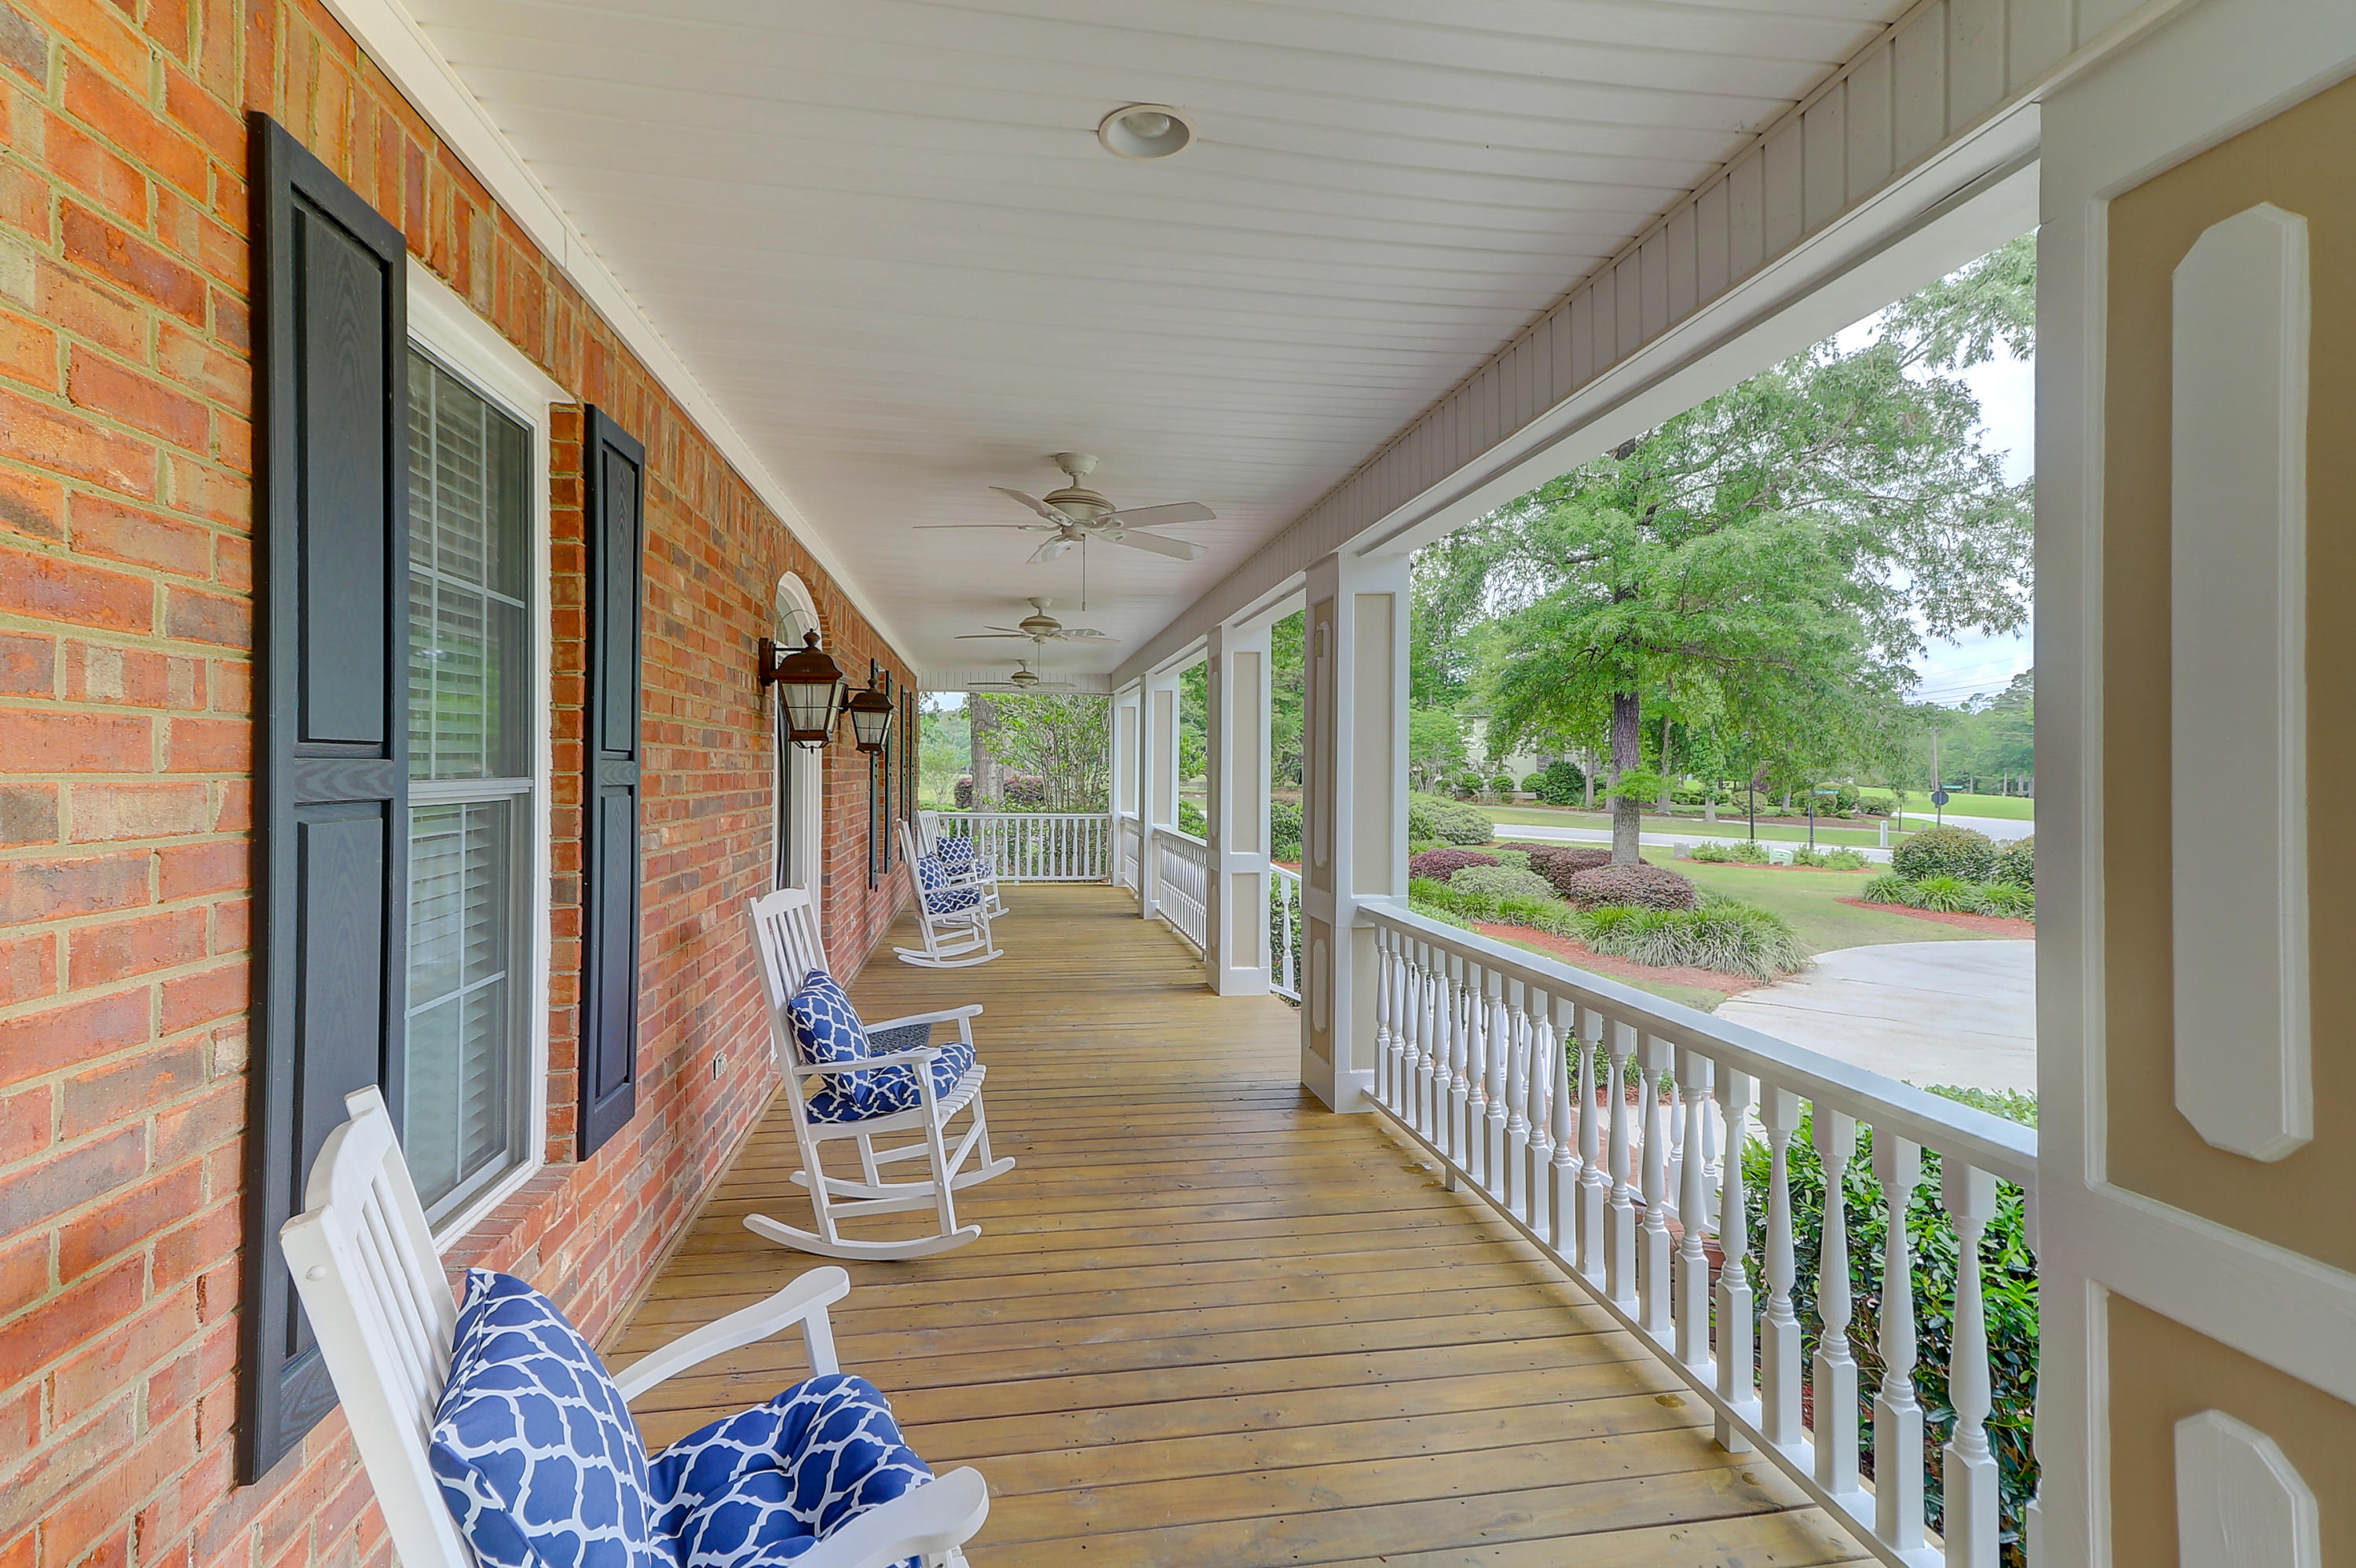 Coosaw Creek Country Club Homes For Sale - 8700 Fairway Woods, North Charleston, SC - 19